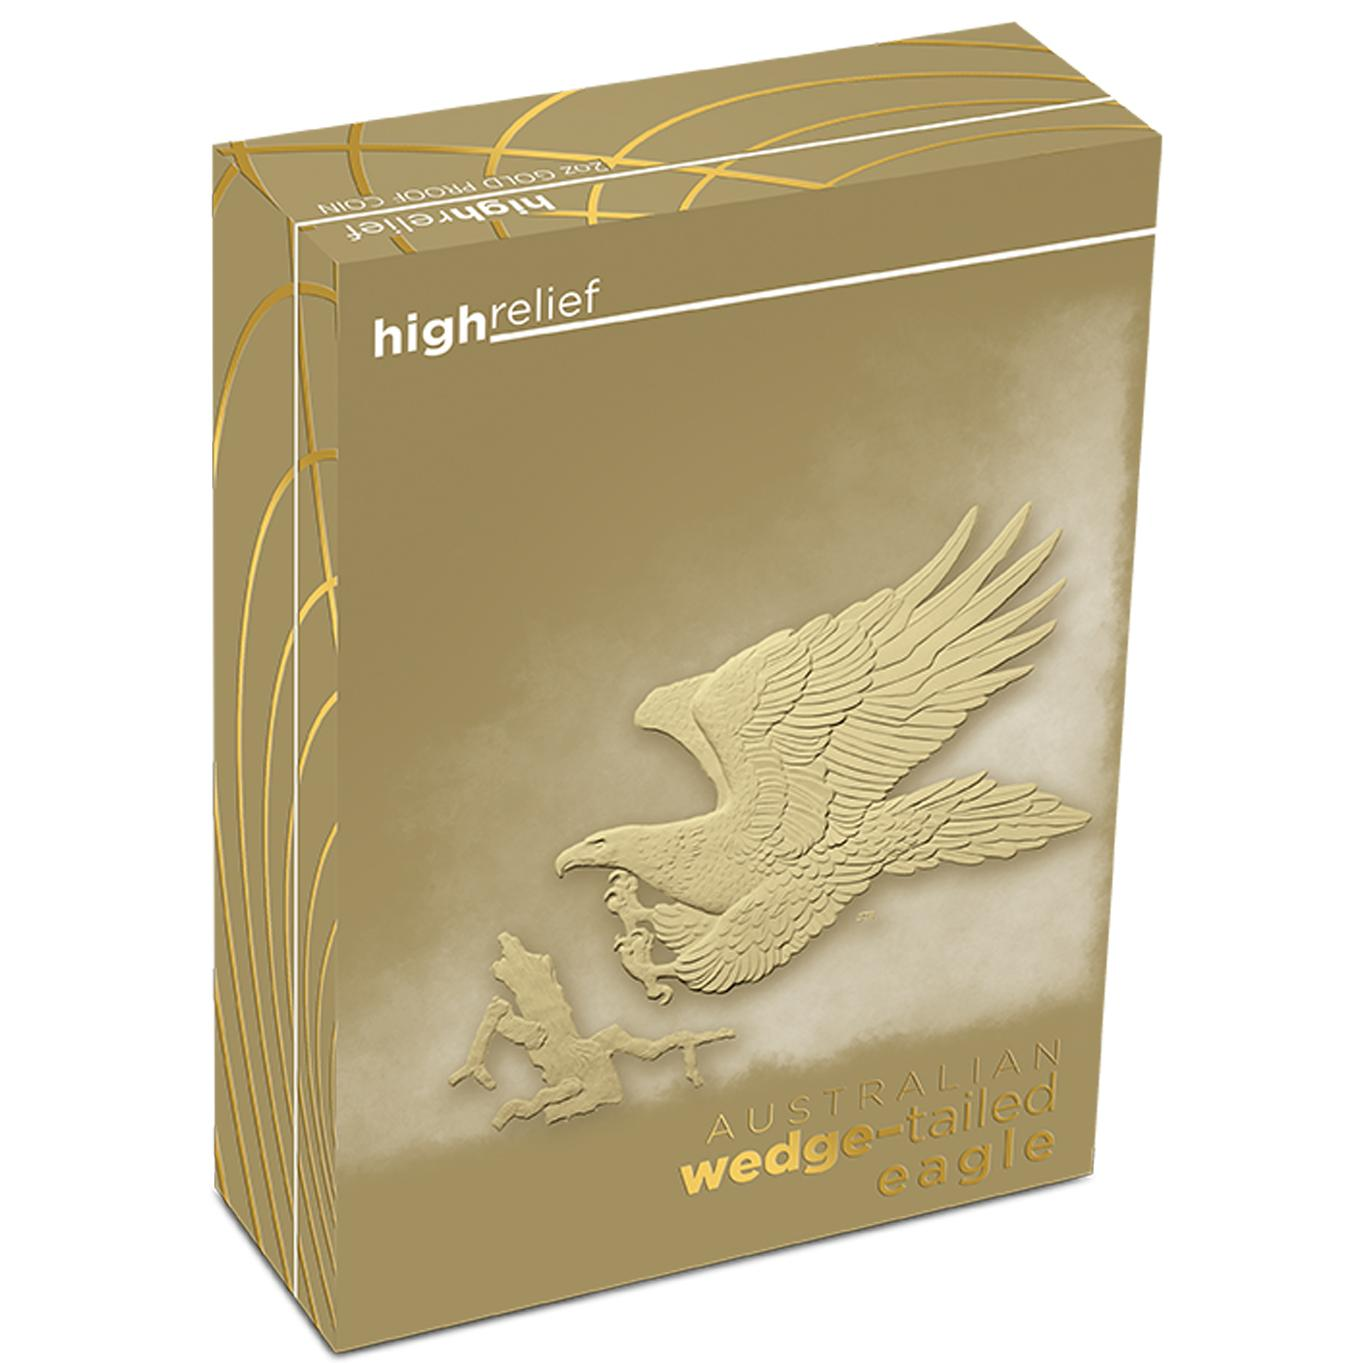 australian wedge tailed eagle 2014 2oz gold proof high relief coin shipper